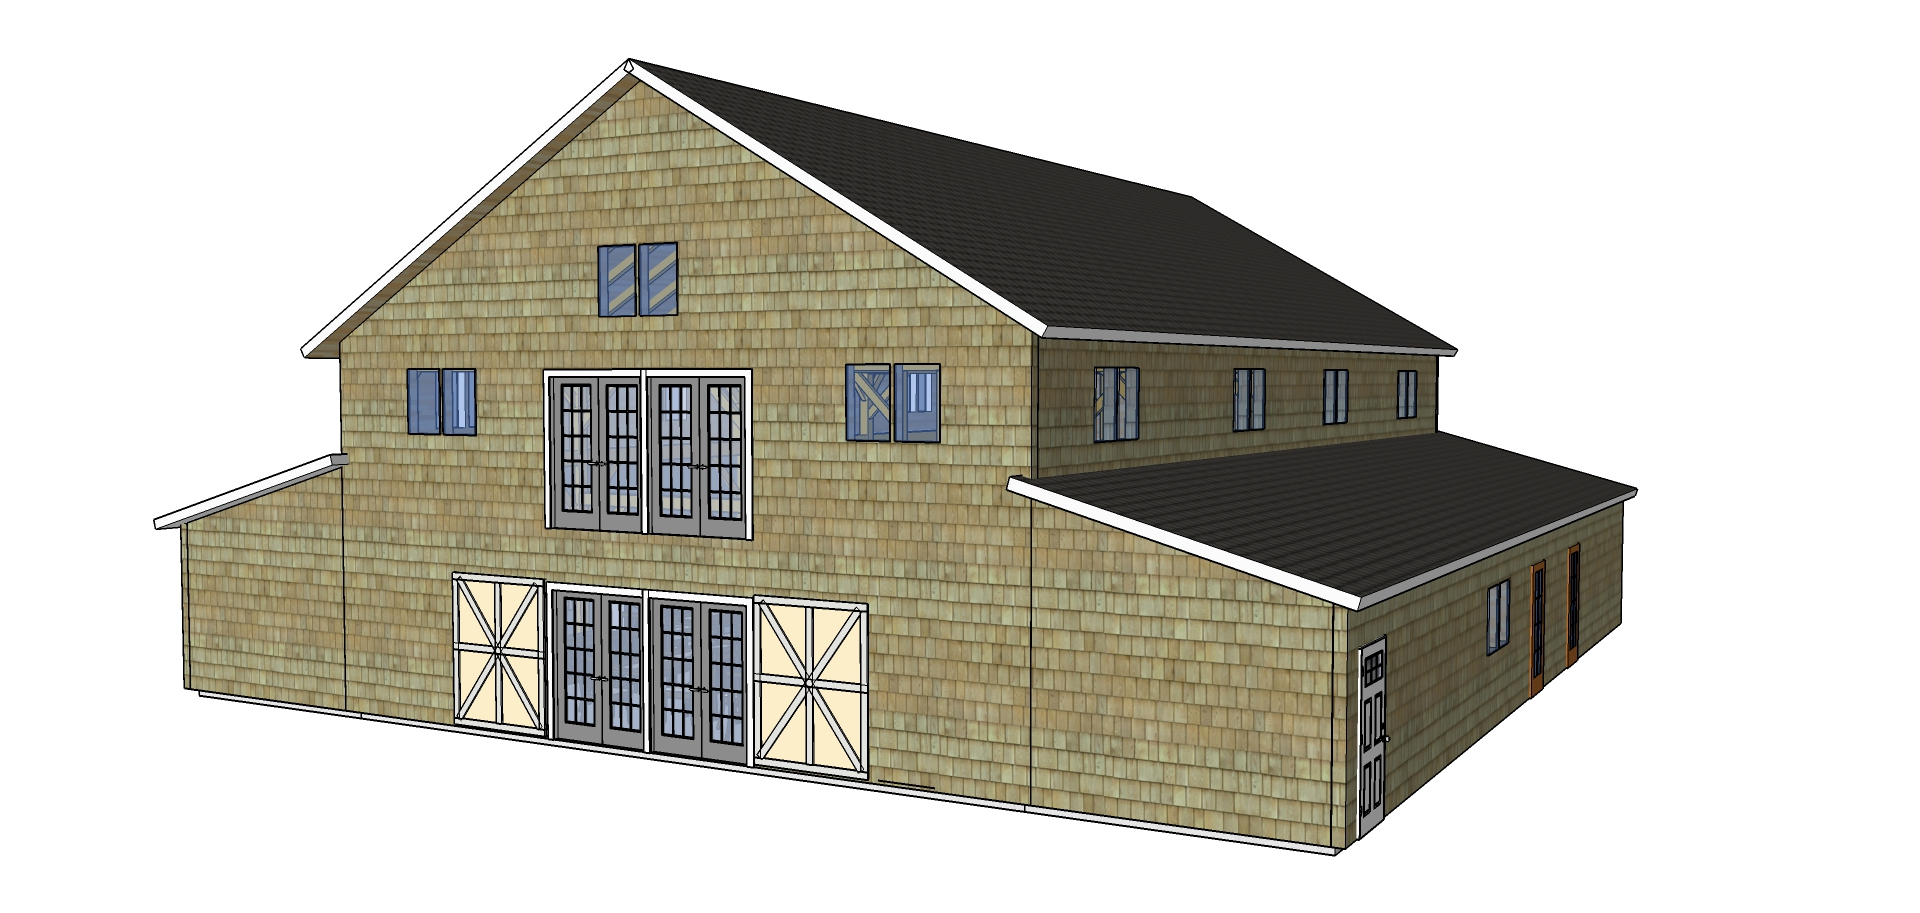 Barn Lights timberframe rendering exterior doors